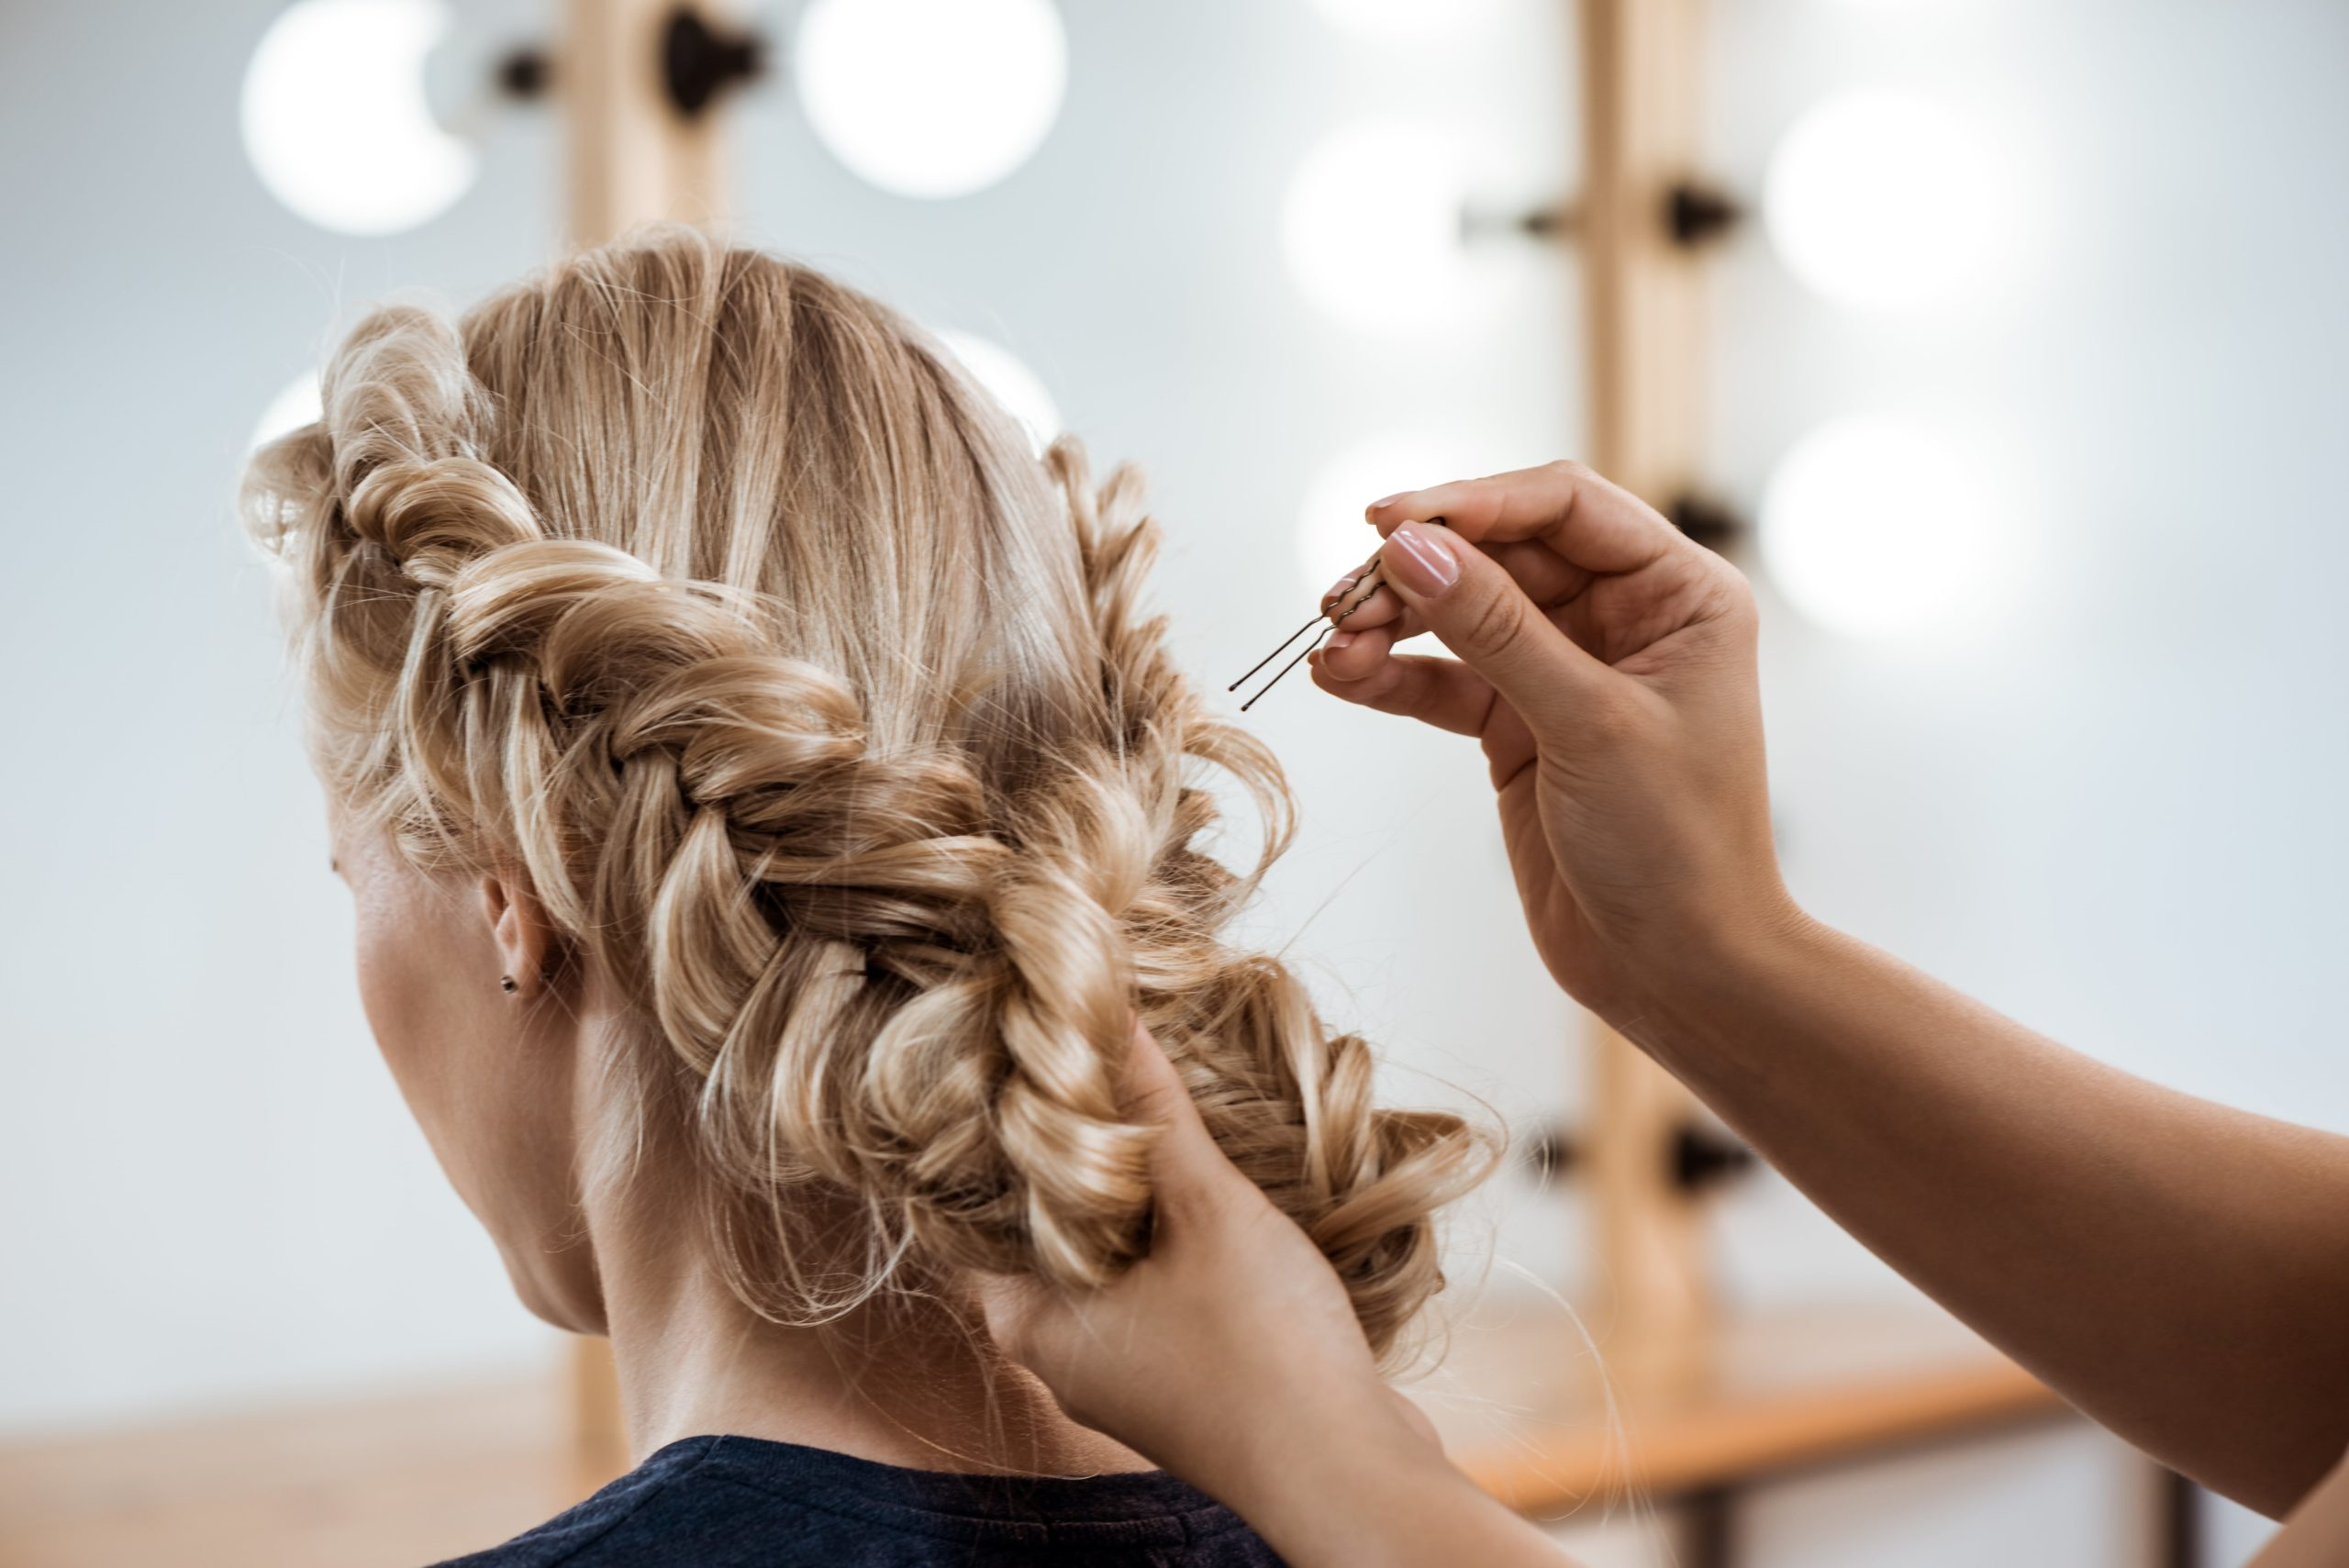 6 Editor-Approved Holiday Hairstyles